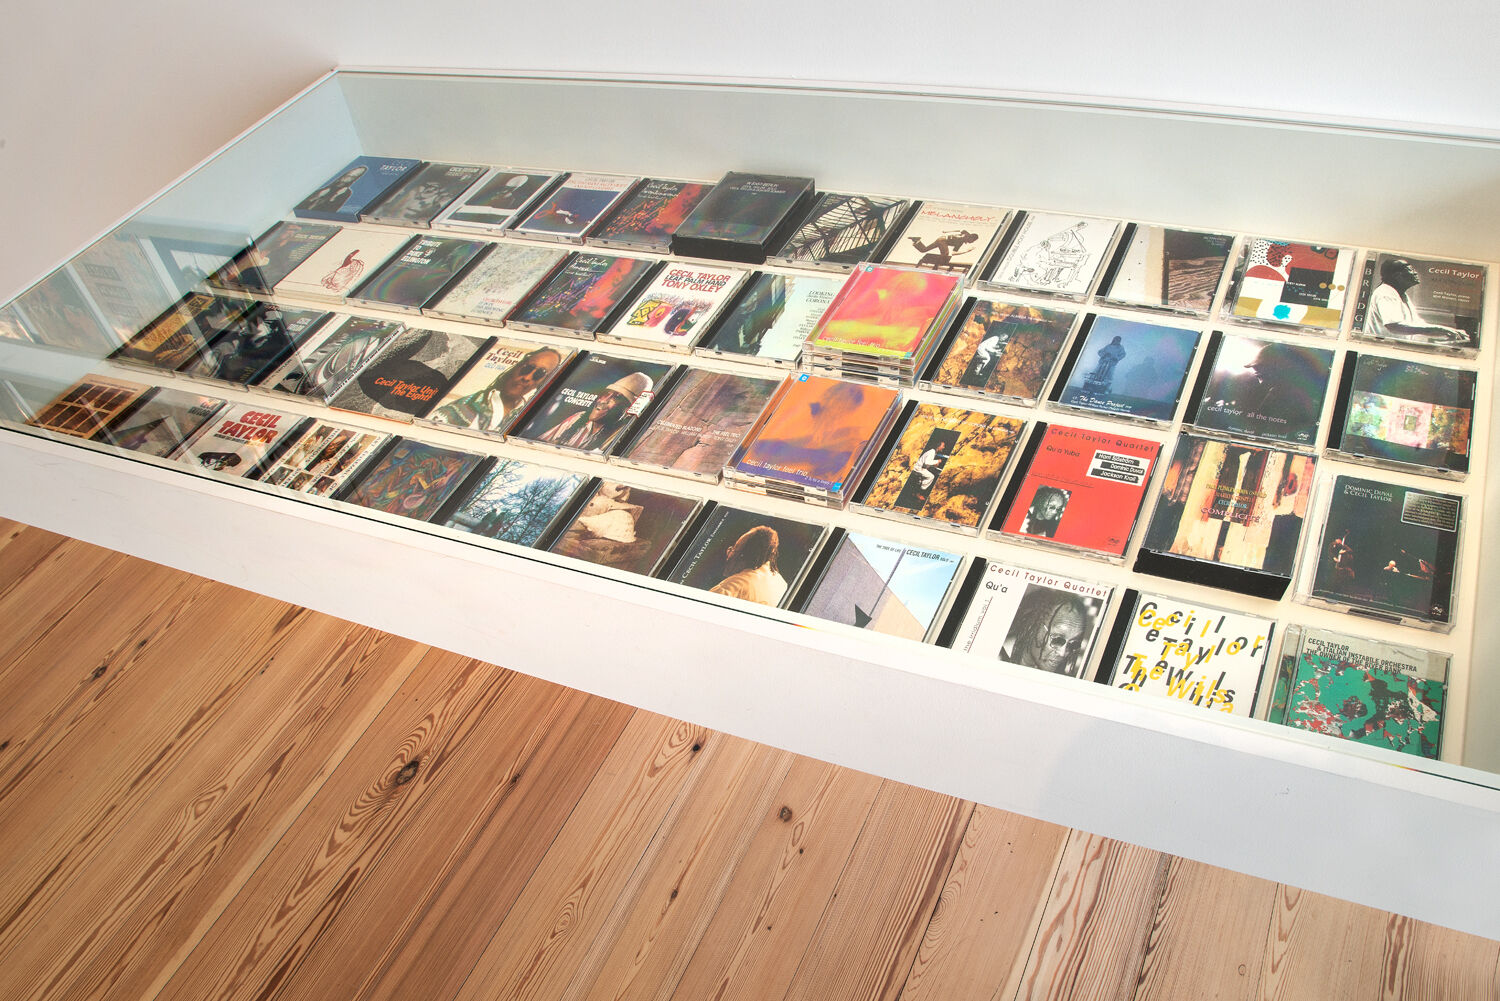 A table displaying CD albums.